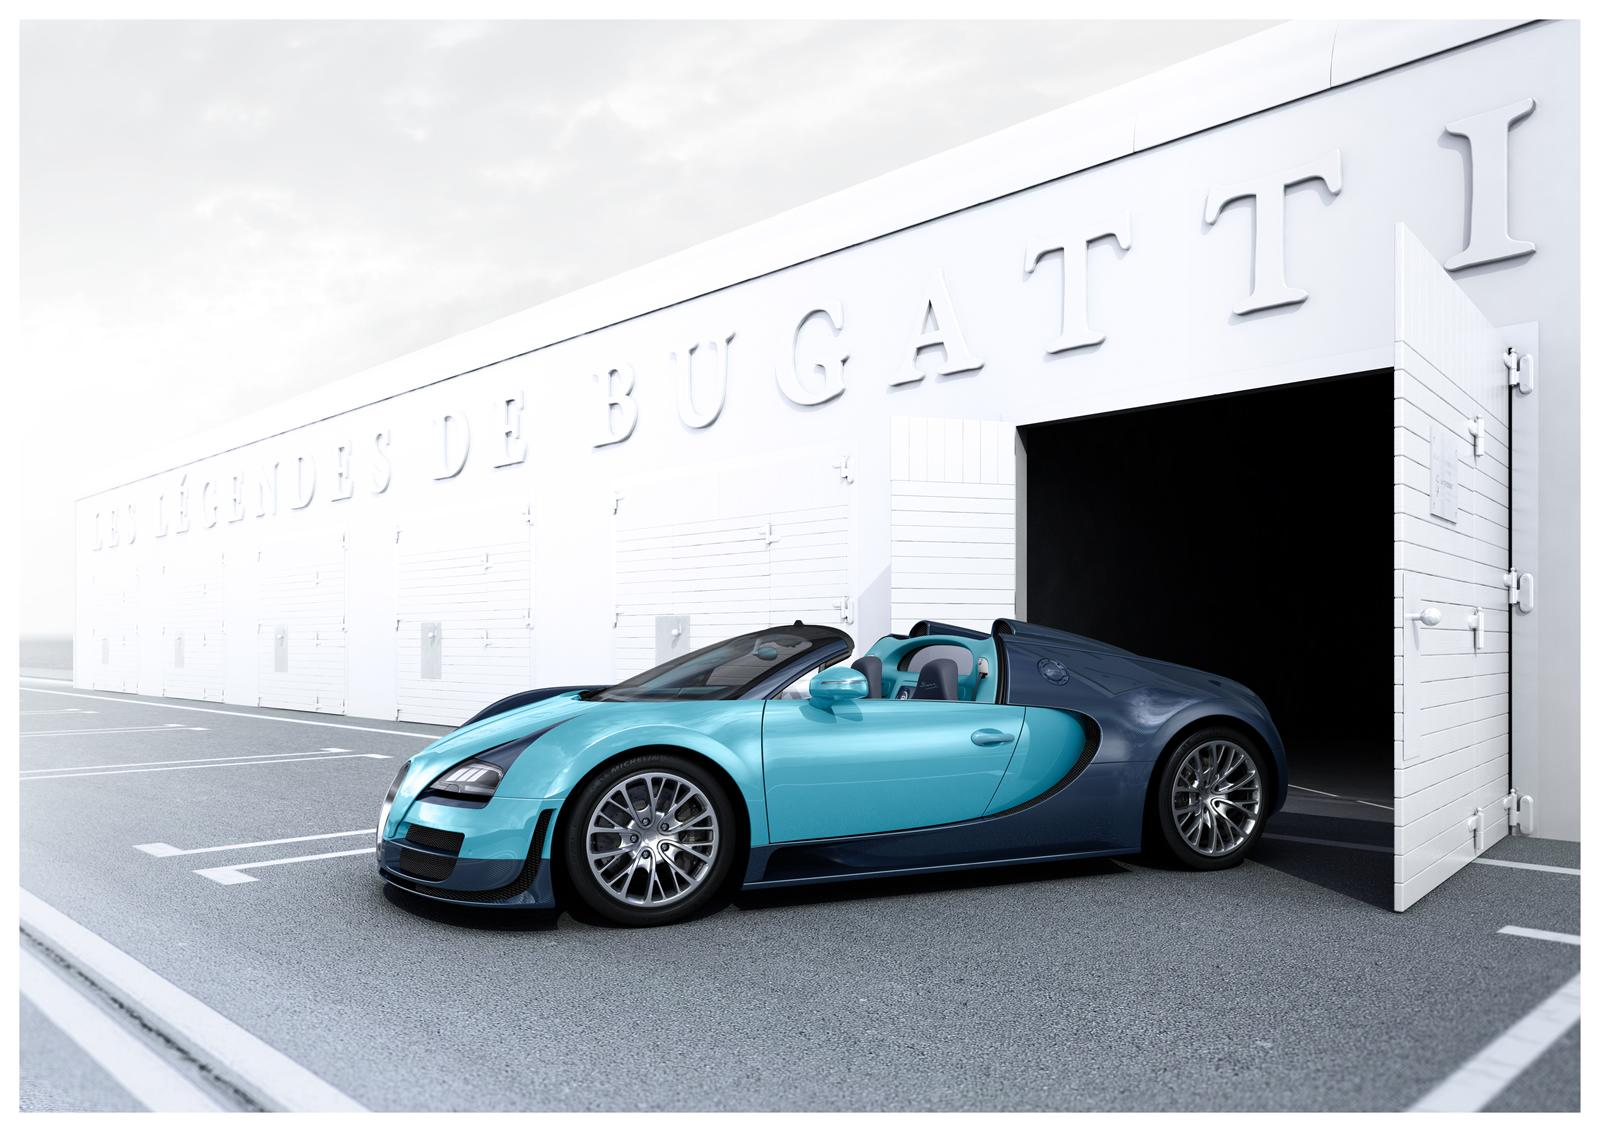 bugatti-launches-new-limited-edition-veyron-photo-gallery_6